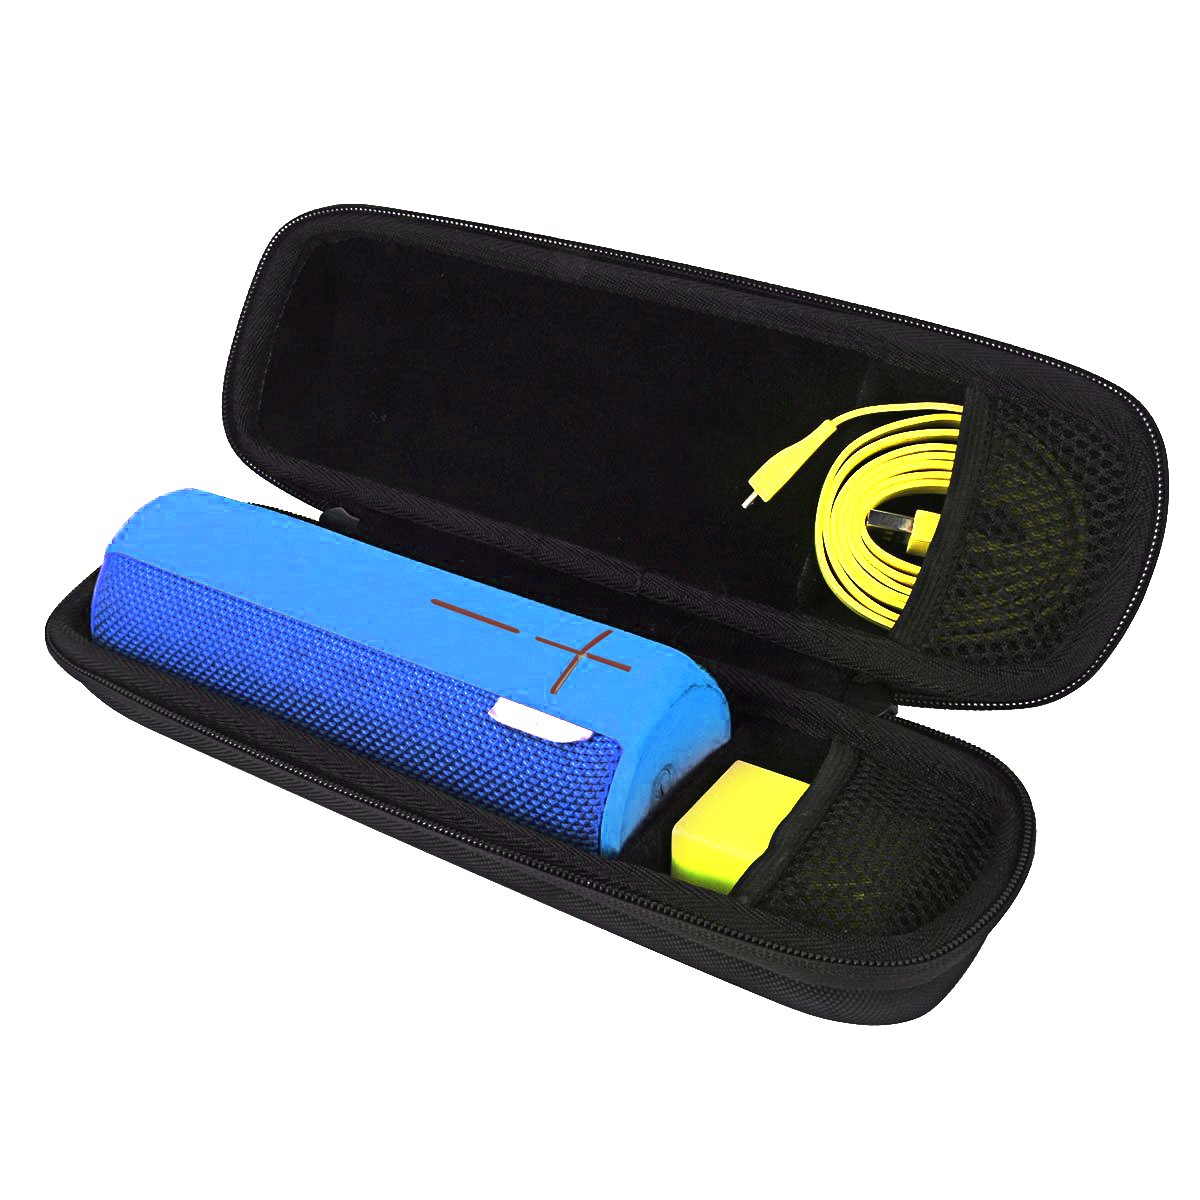 Hard travel case for ultimate ears ue boom 2 bluetooth for Housse ue boom 2